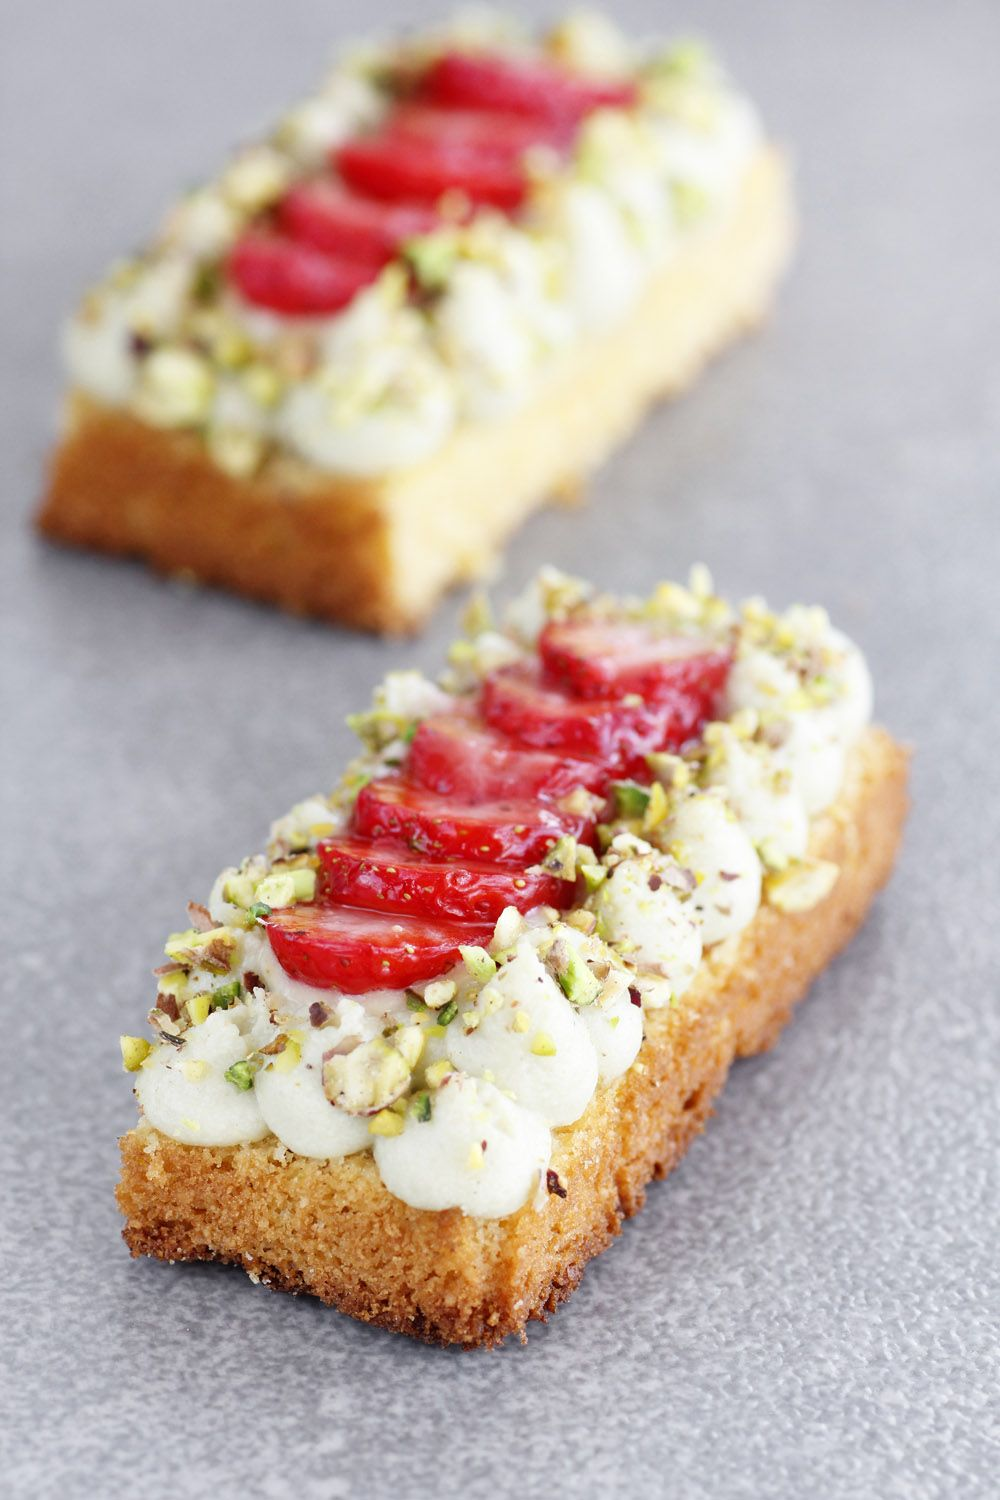 Strawberry Cake with Passion fruit and Pistachio Cream